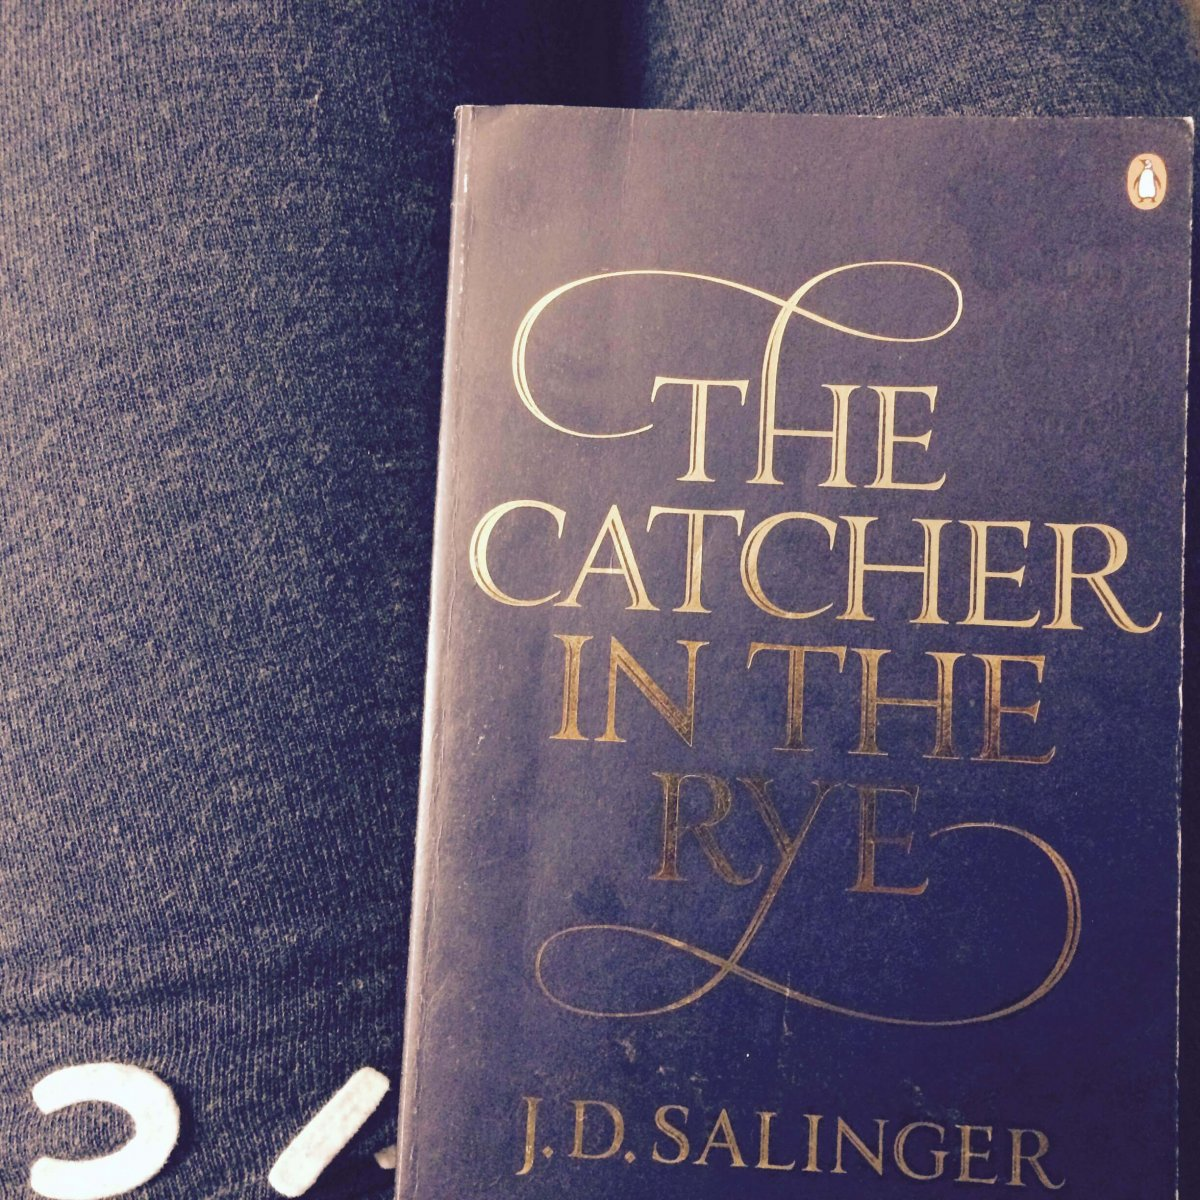 a review of the controversial novel of jd salinger the catcher in the rye Available at the web address wwwaudiblecouk lolita is nabokov's most famous and controversial novel like jd salinger's the catcher in the rye.